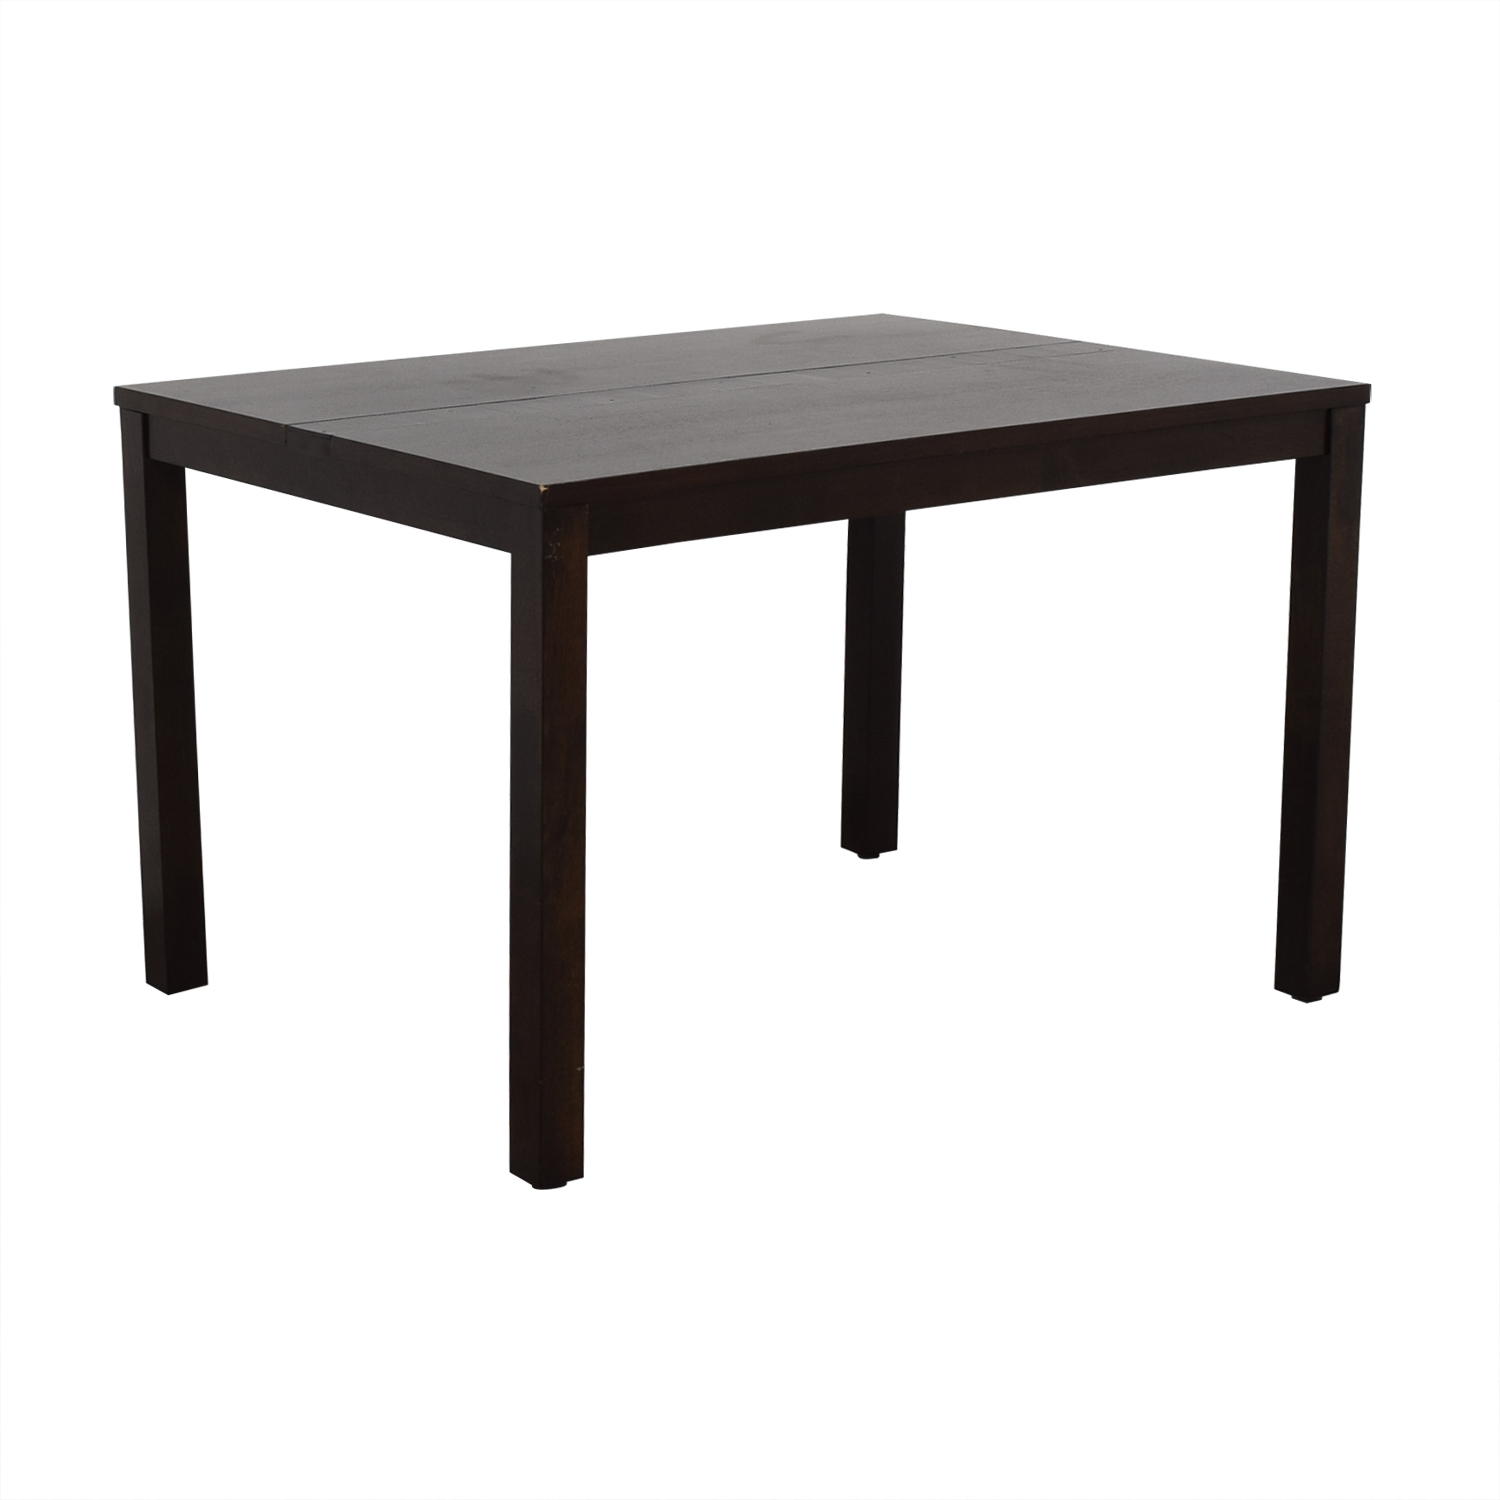 American Signature American Signature Dinner Table for sale